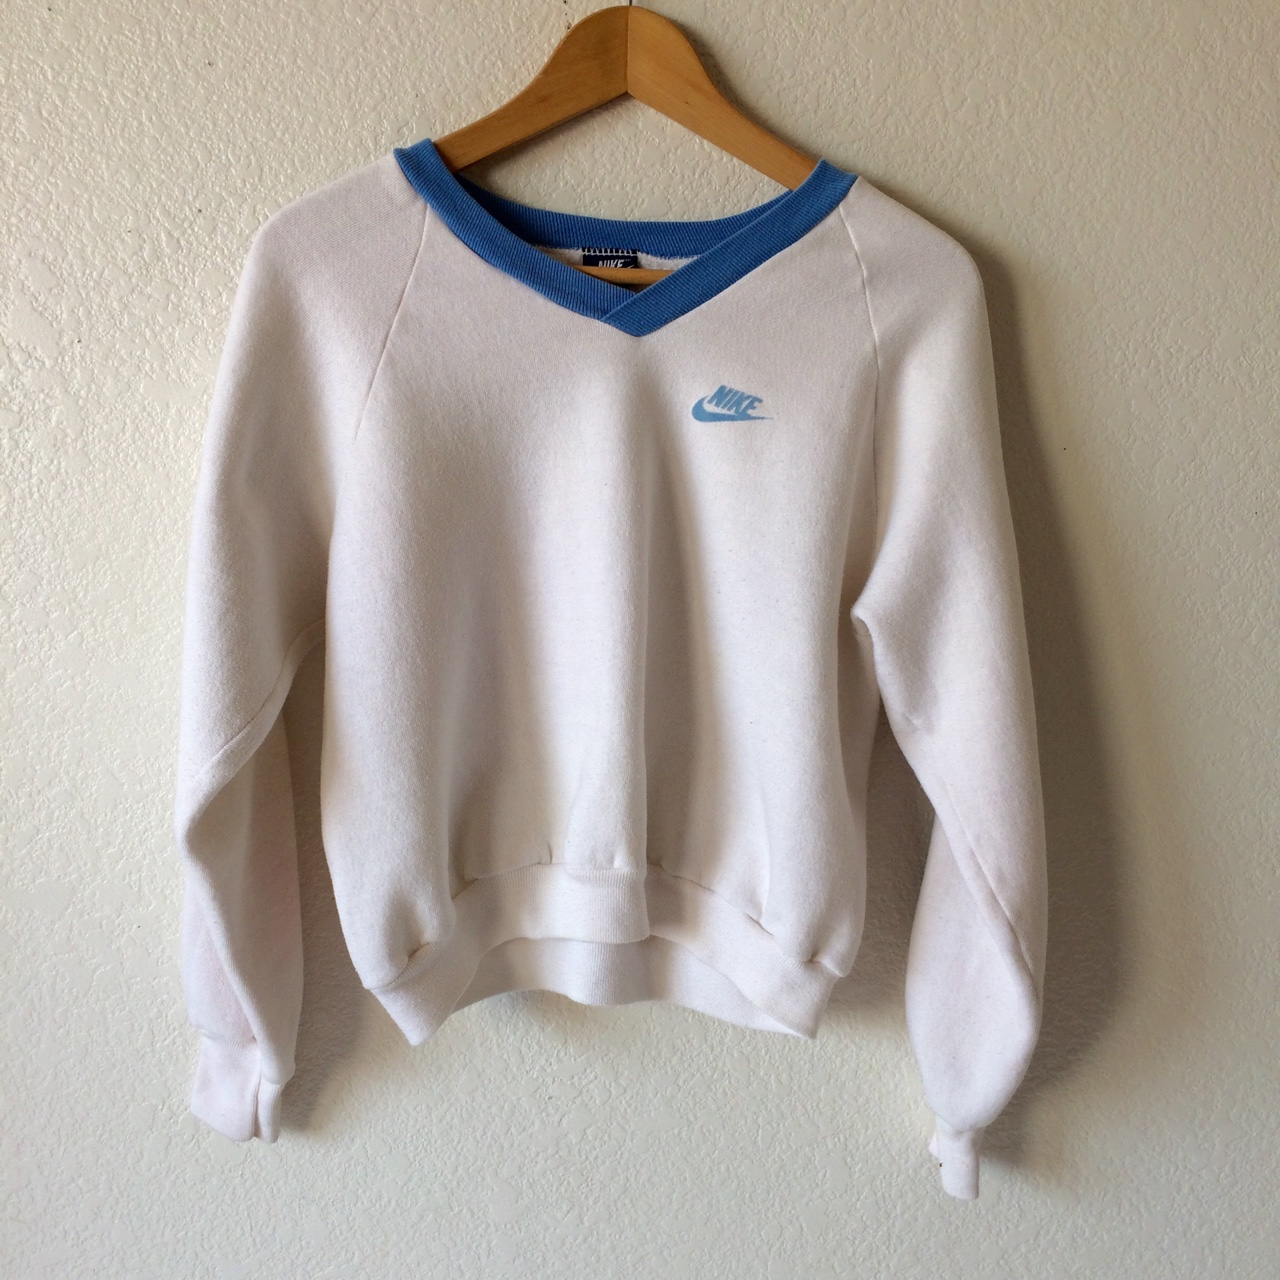 nike v neck sweatshirt women's